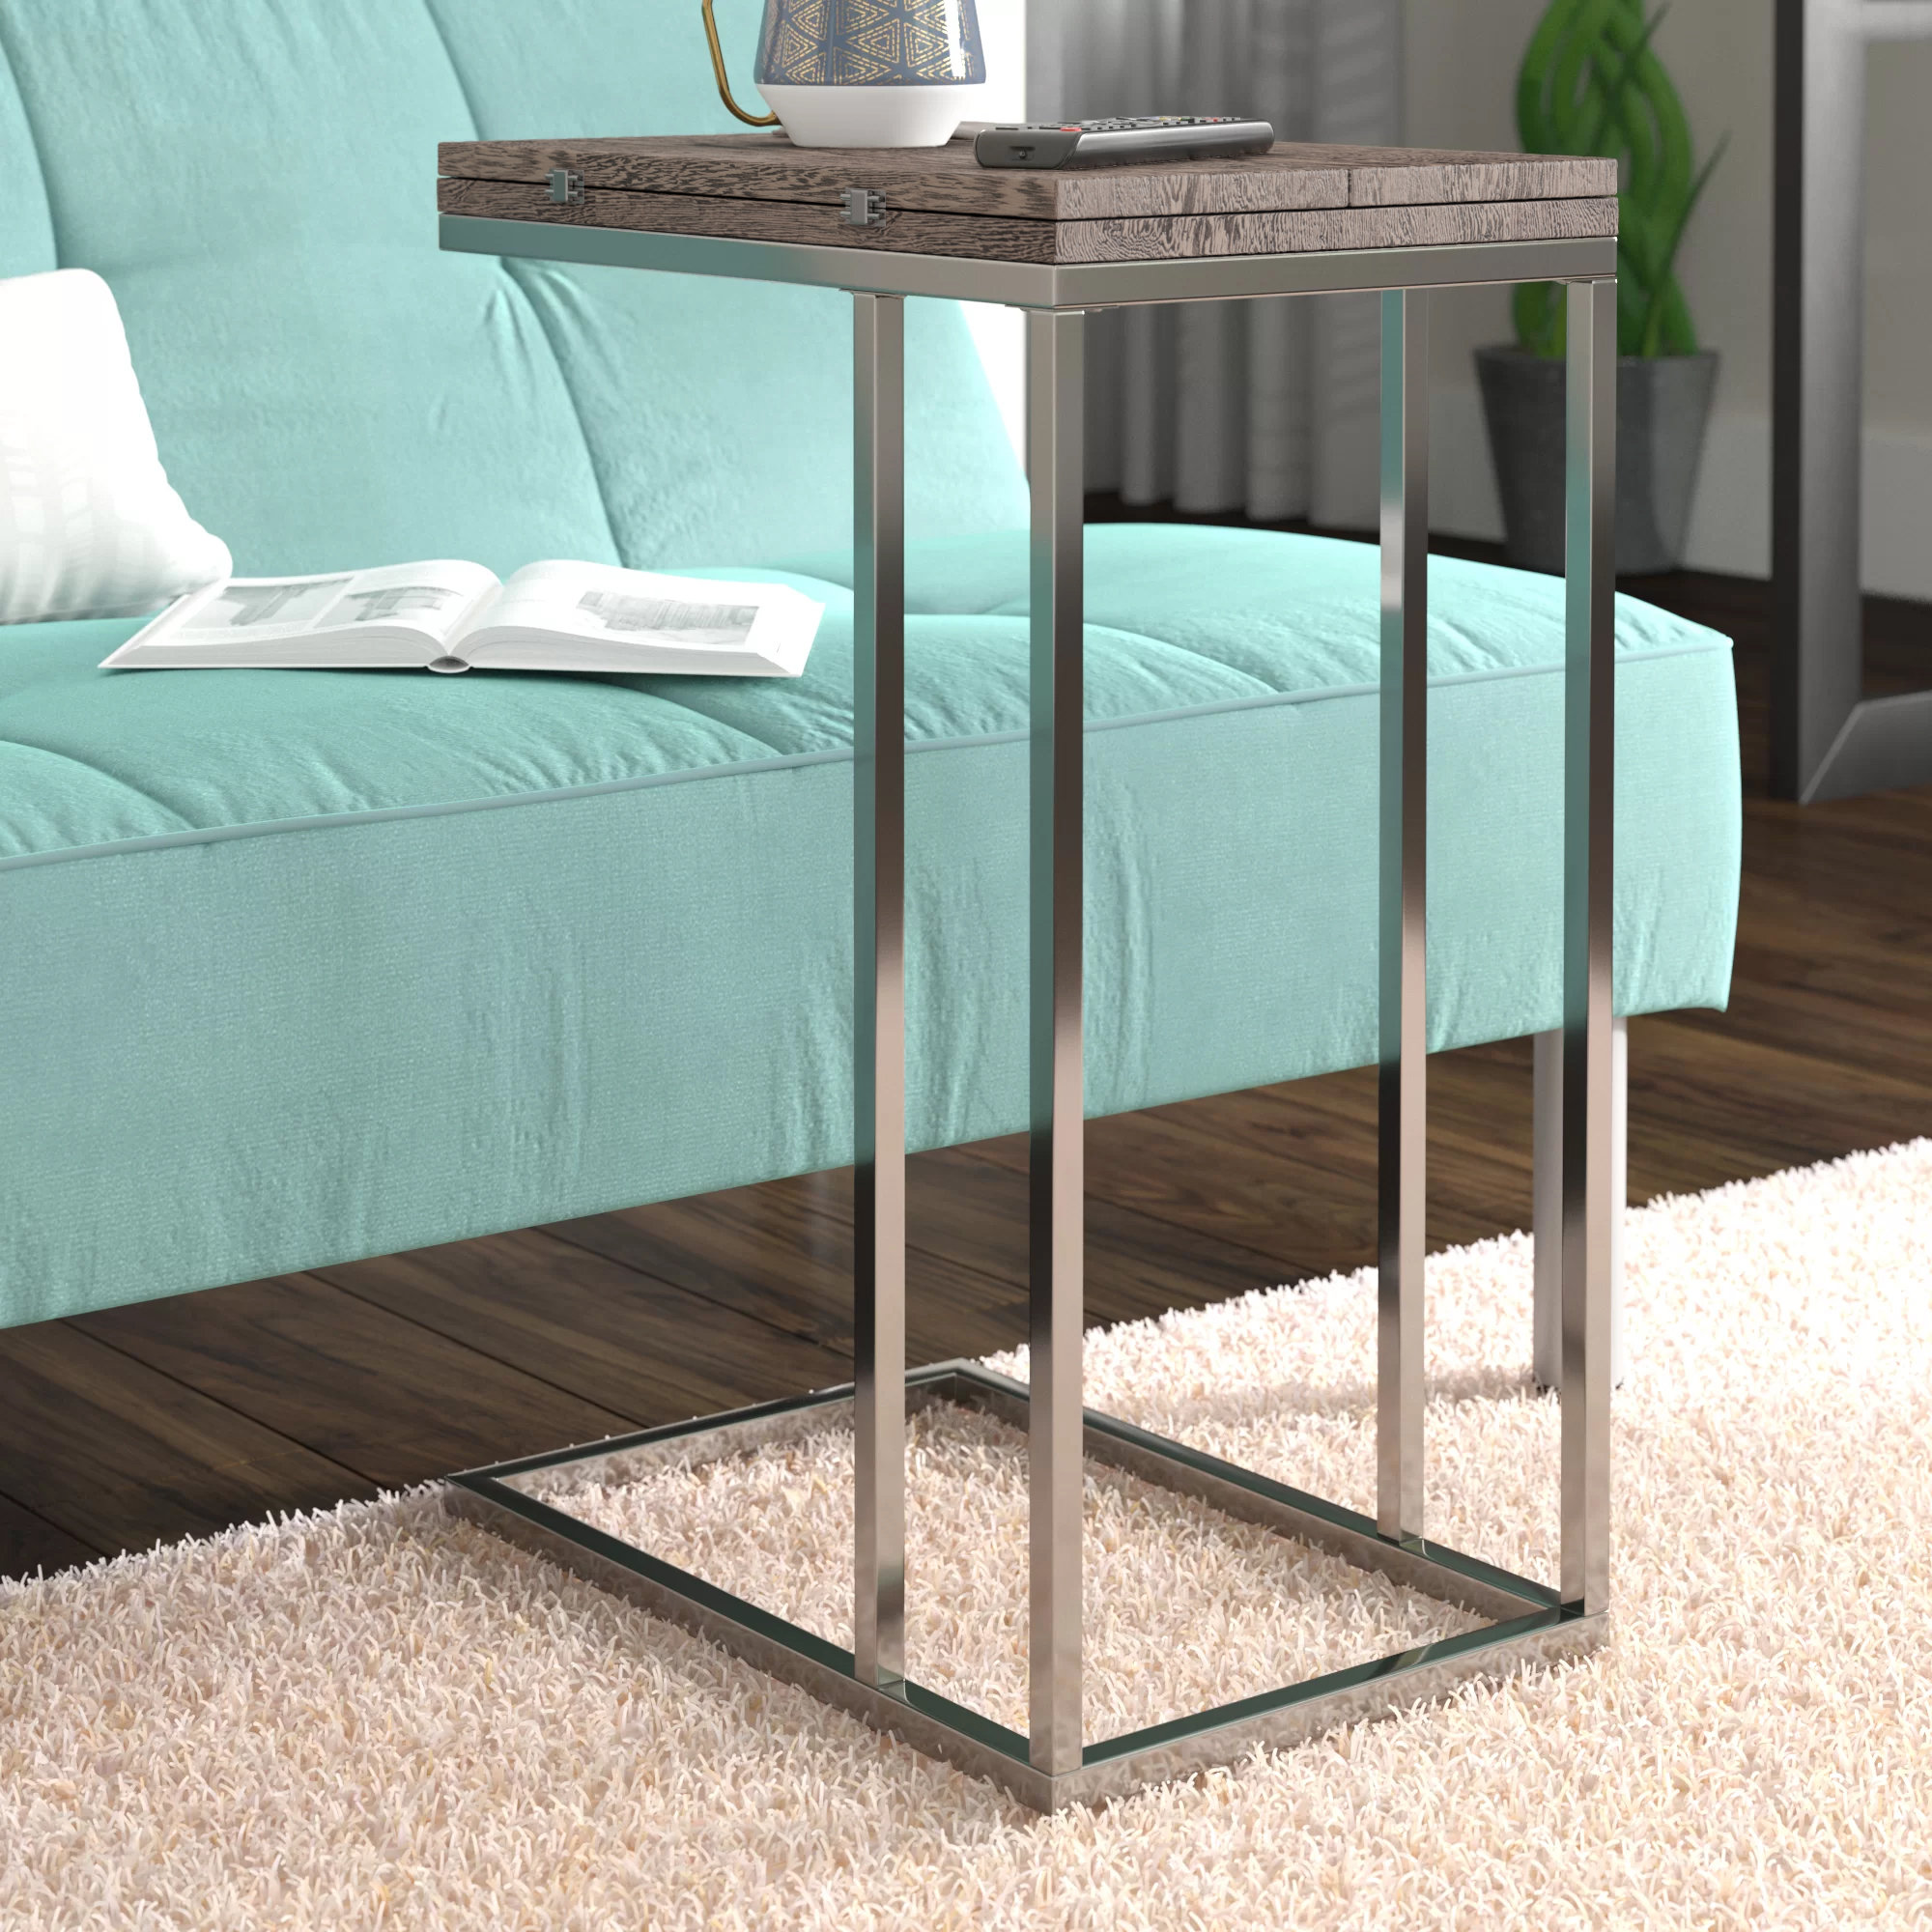 shaped side table mccollom end mini accent lewis wood washer and dryer brass finish coffee small half round console sofa set apartment size furniture metal clear chair modern